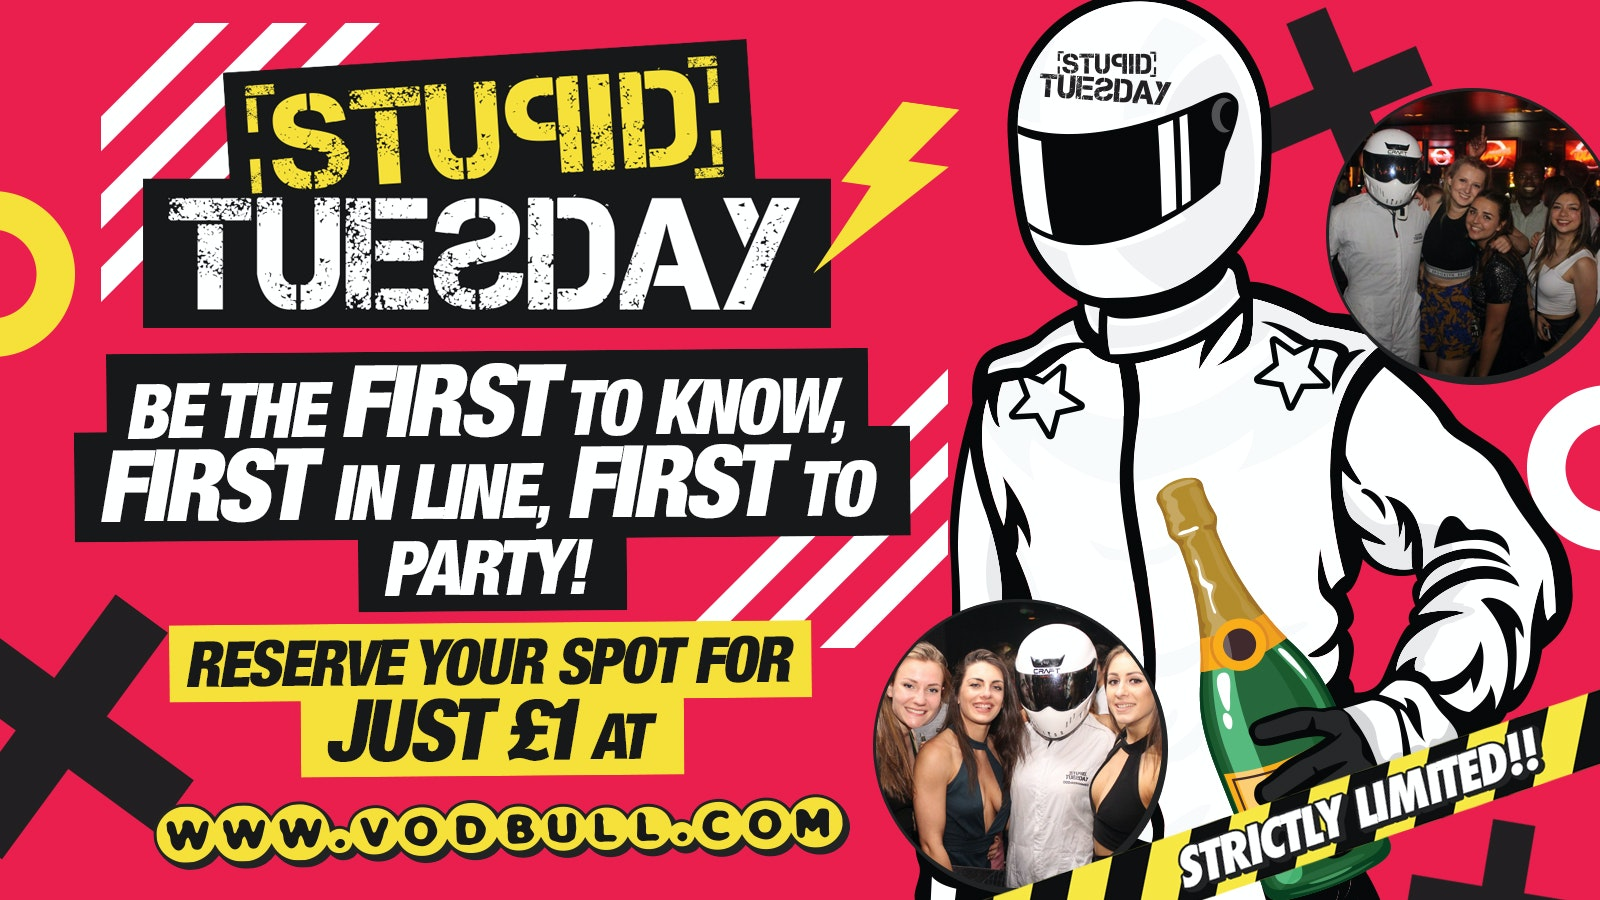 Be the First to know, First in line, First to Party at STUPID TUESDAY!!